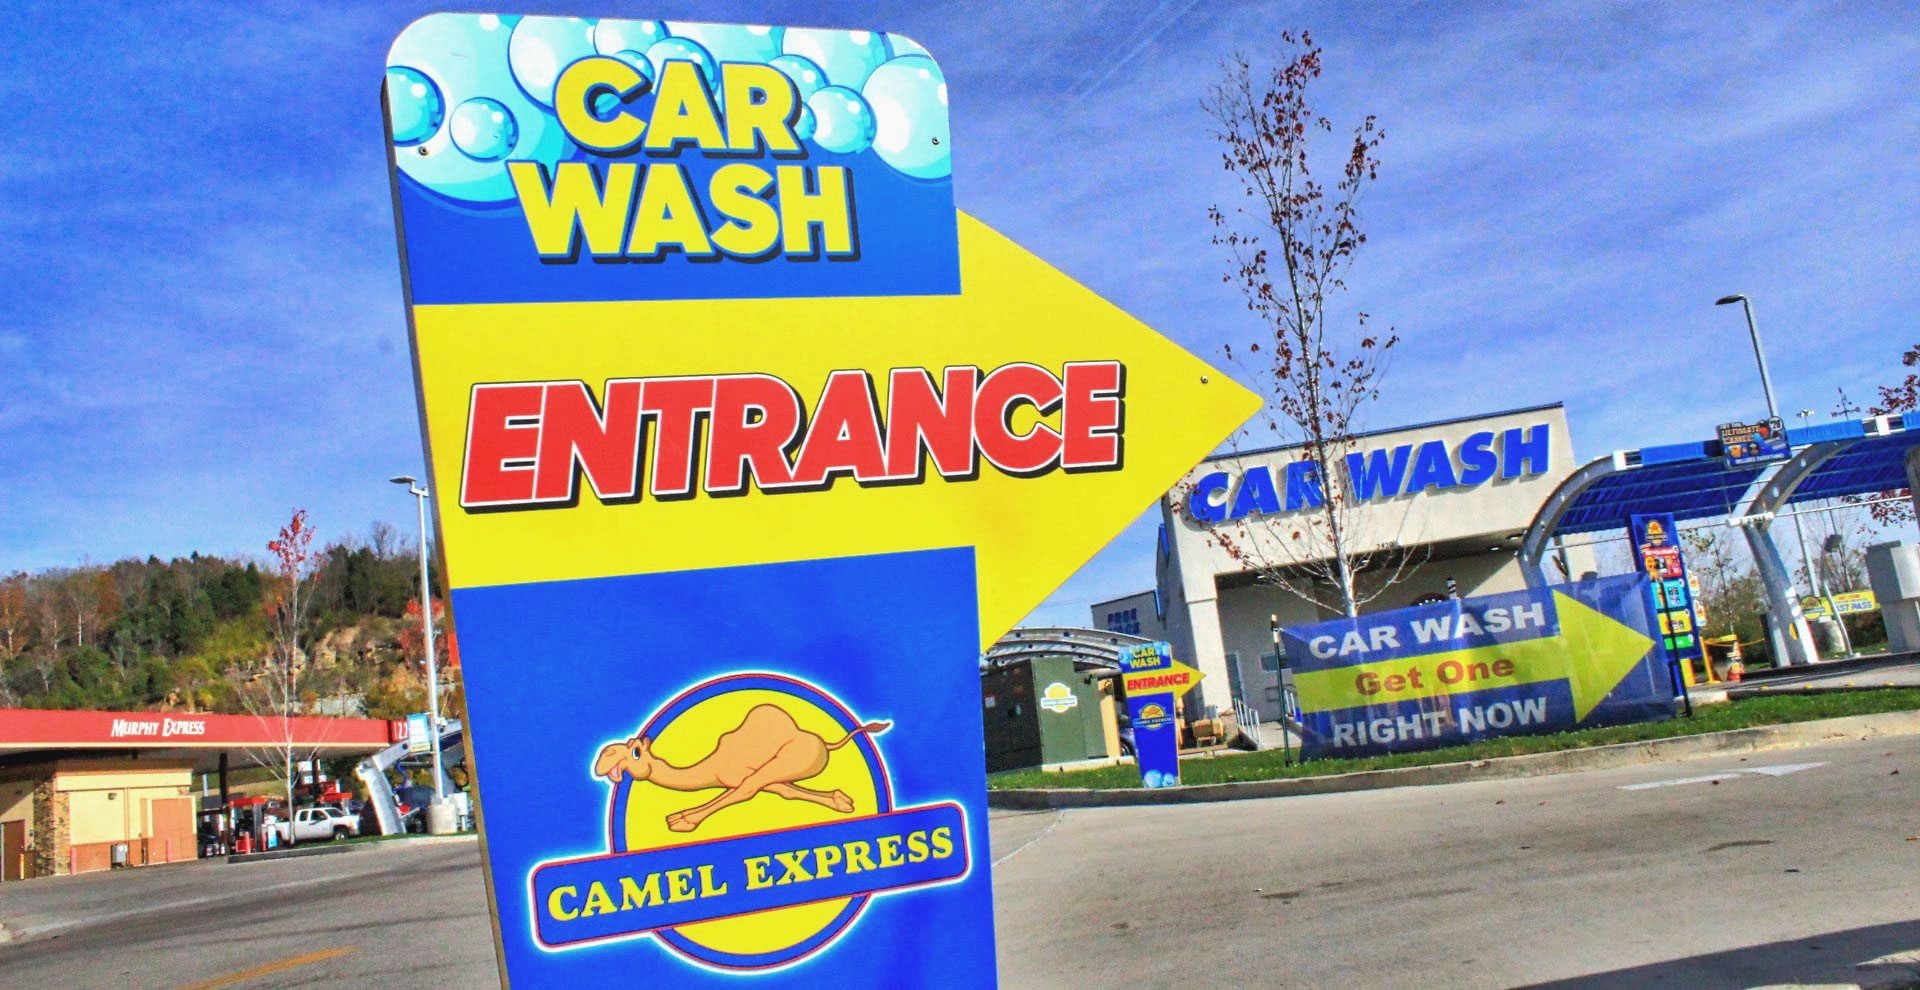 Camel express car wash nashville tn solutioingenieria Images